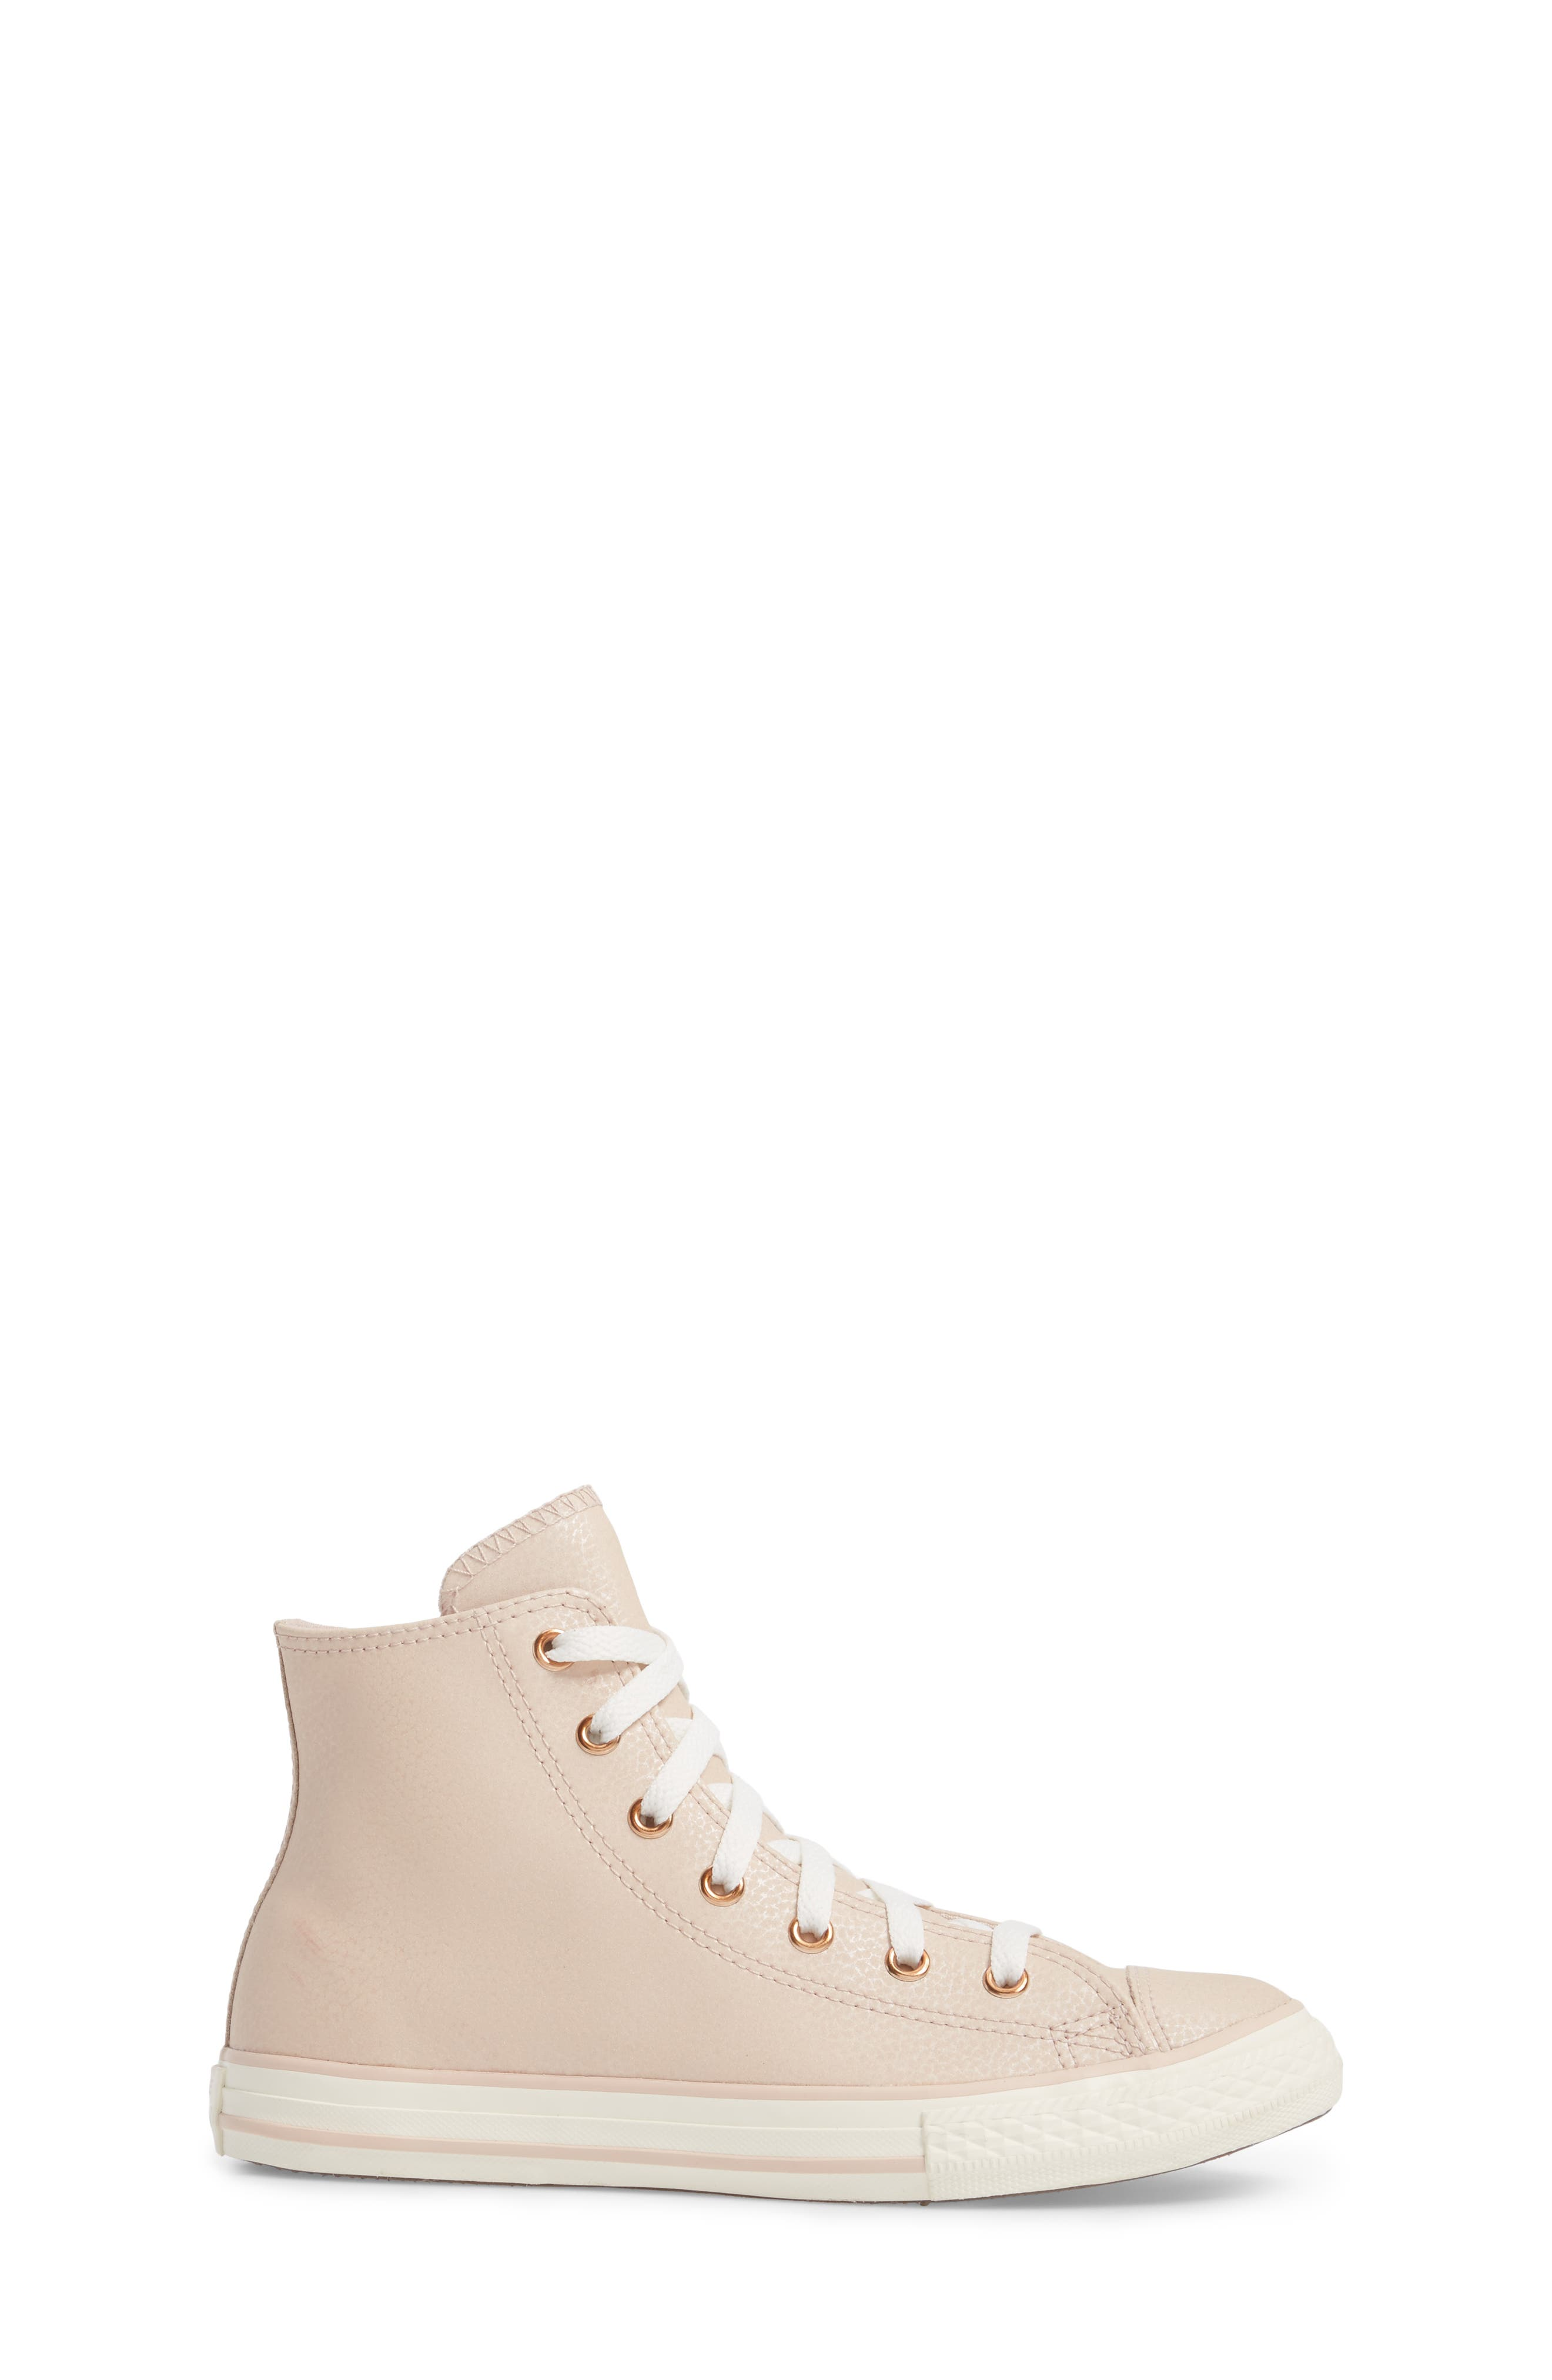 Chuck Taylor<sup>®</sup> All Star<sup>®</sup> High Top Sneaker,                             Alternate thumbnail 6, color,